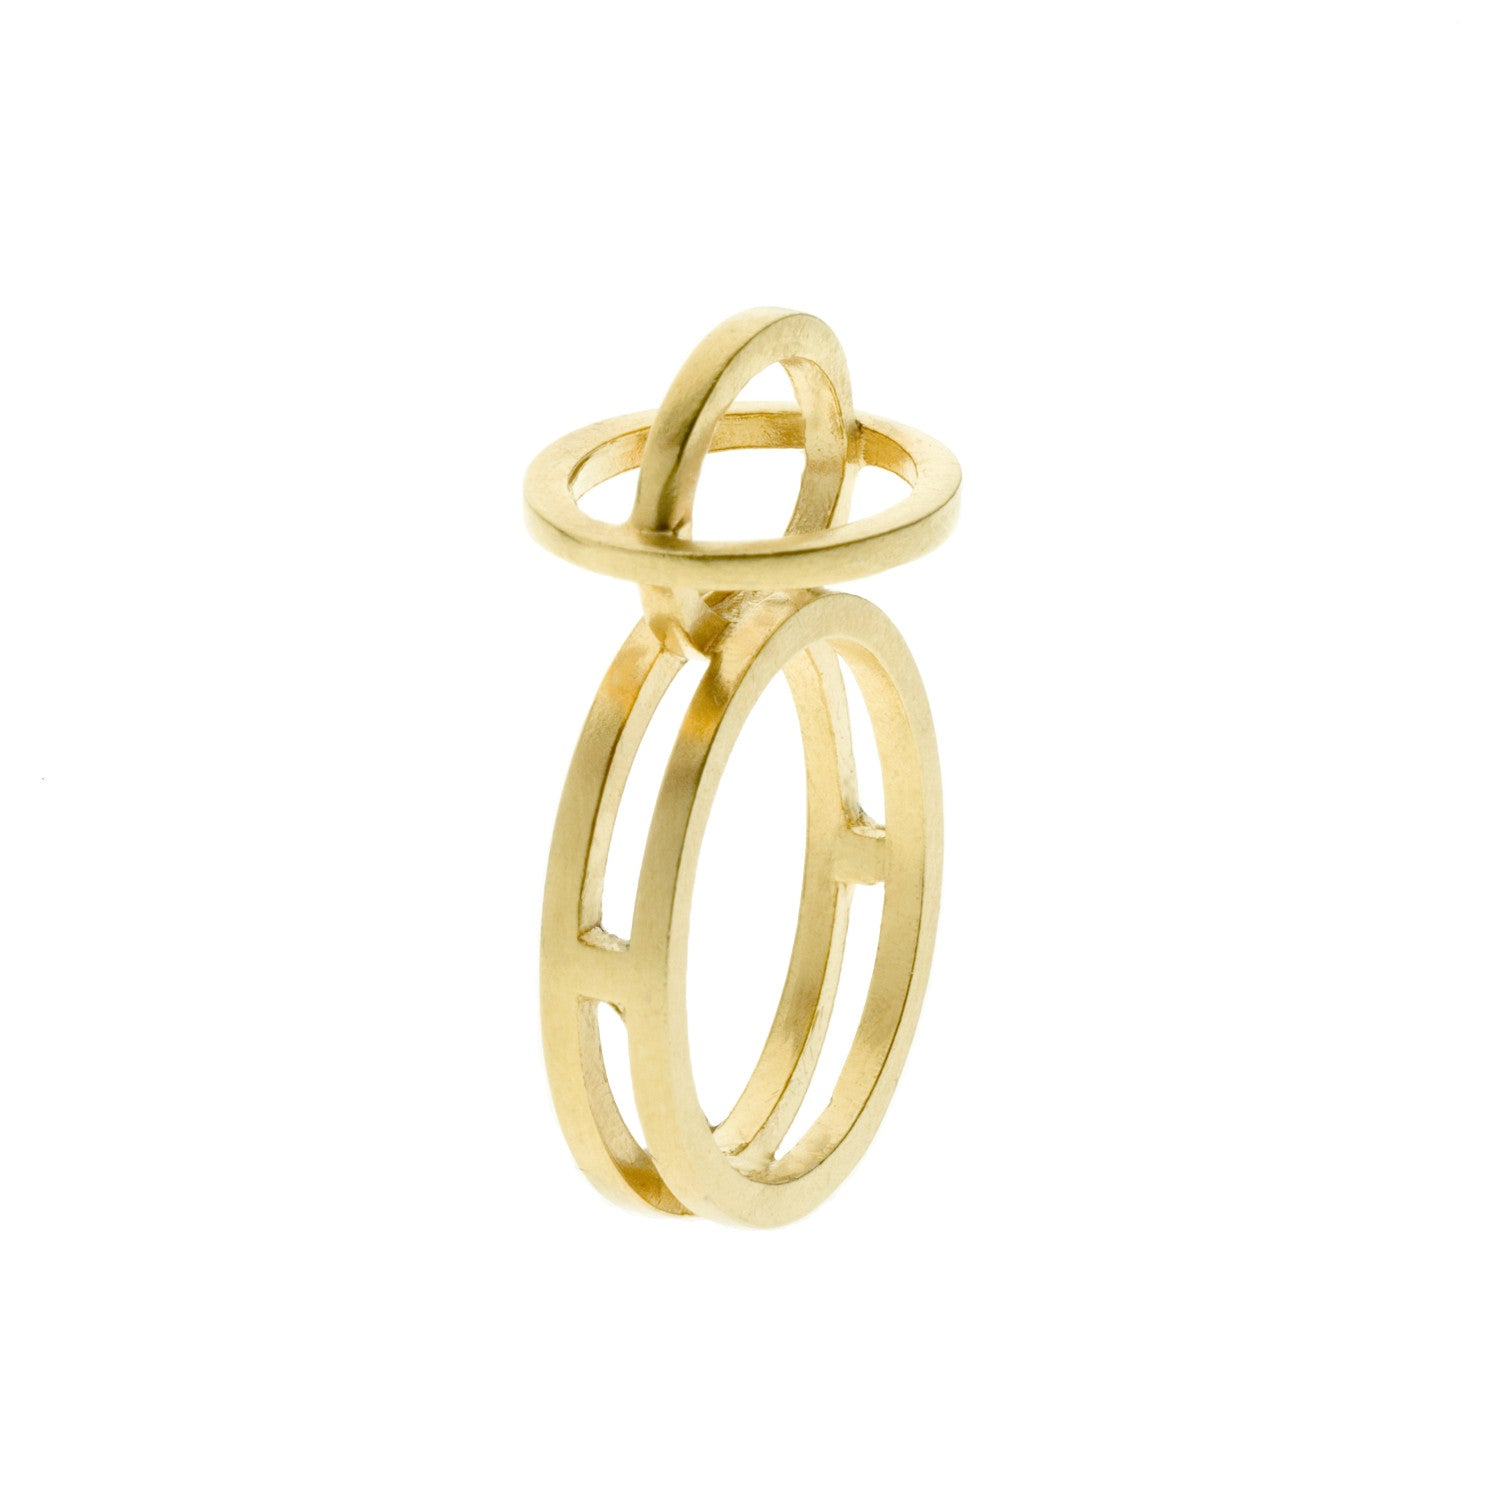 Plain ellipse ring - Nancy rose jewellery